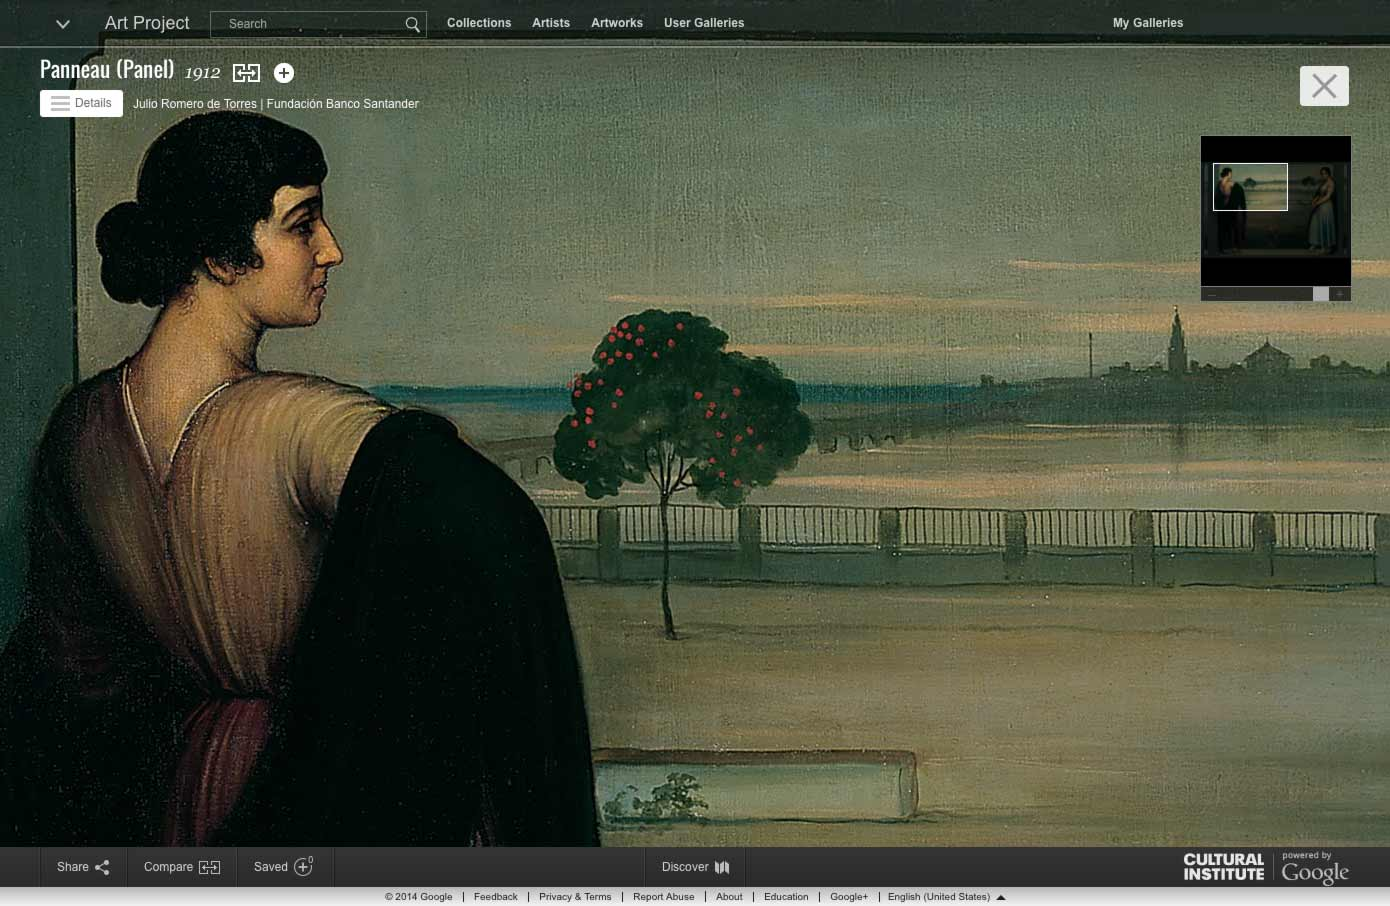 Google Cultural Institute's Art Project contains hundreds of high-resolution artworks from museums all over the world.